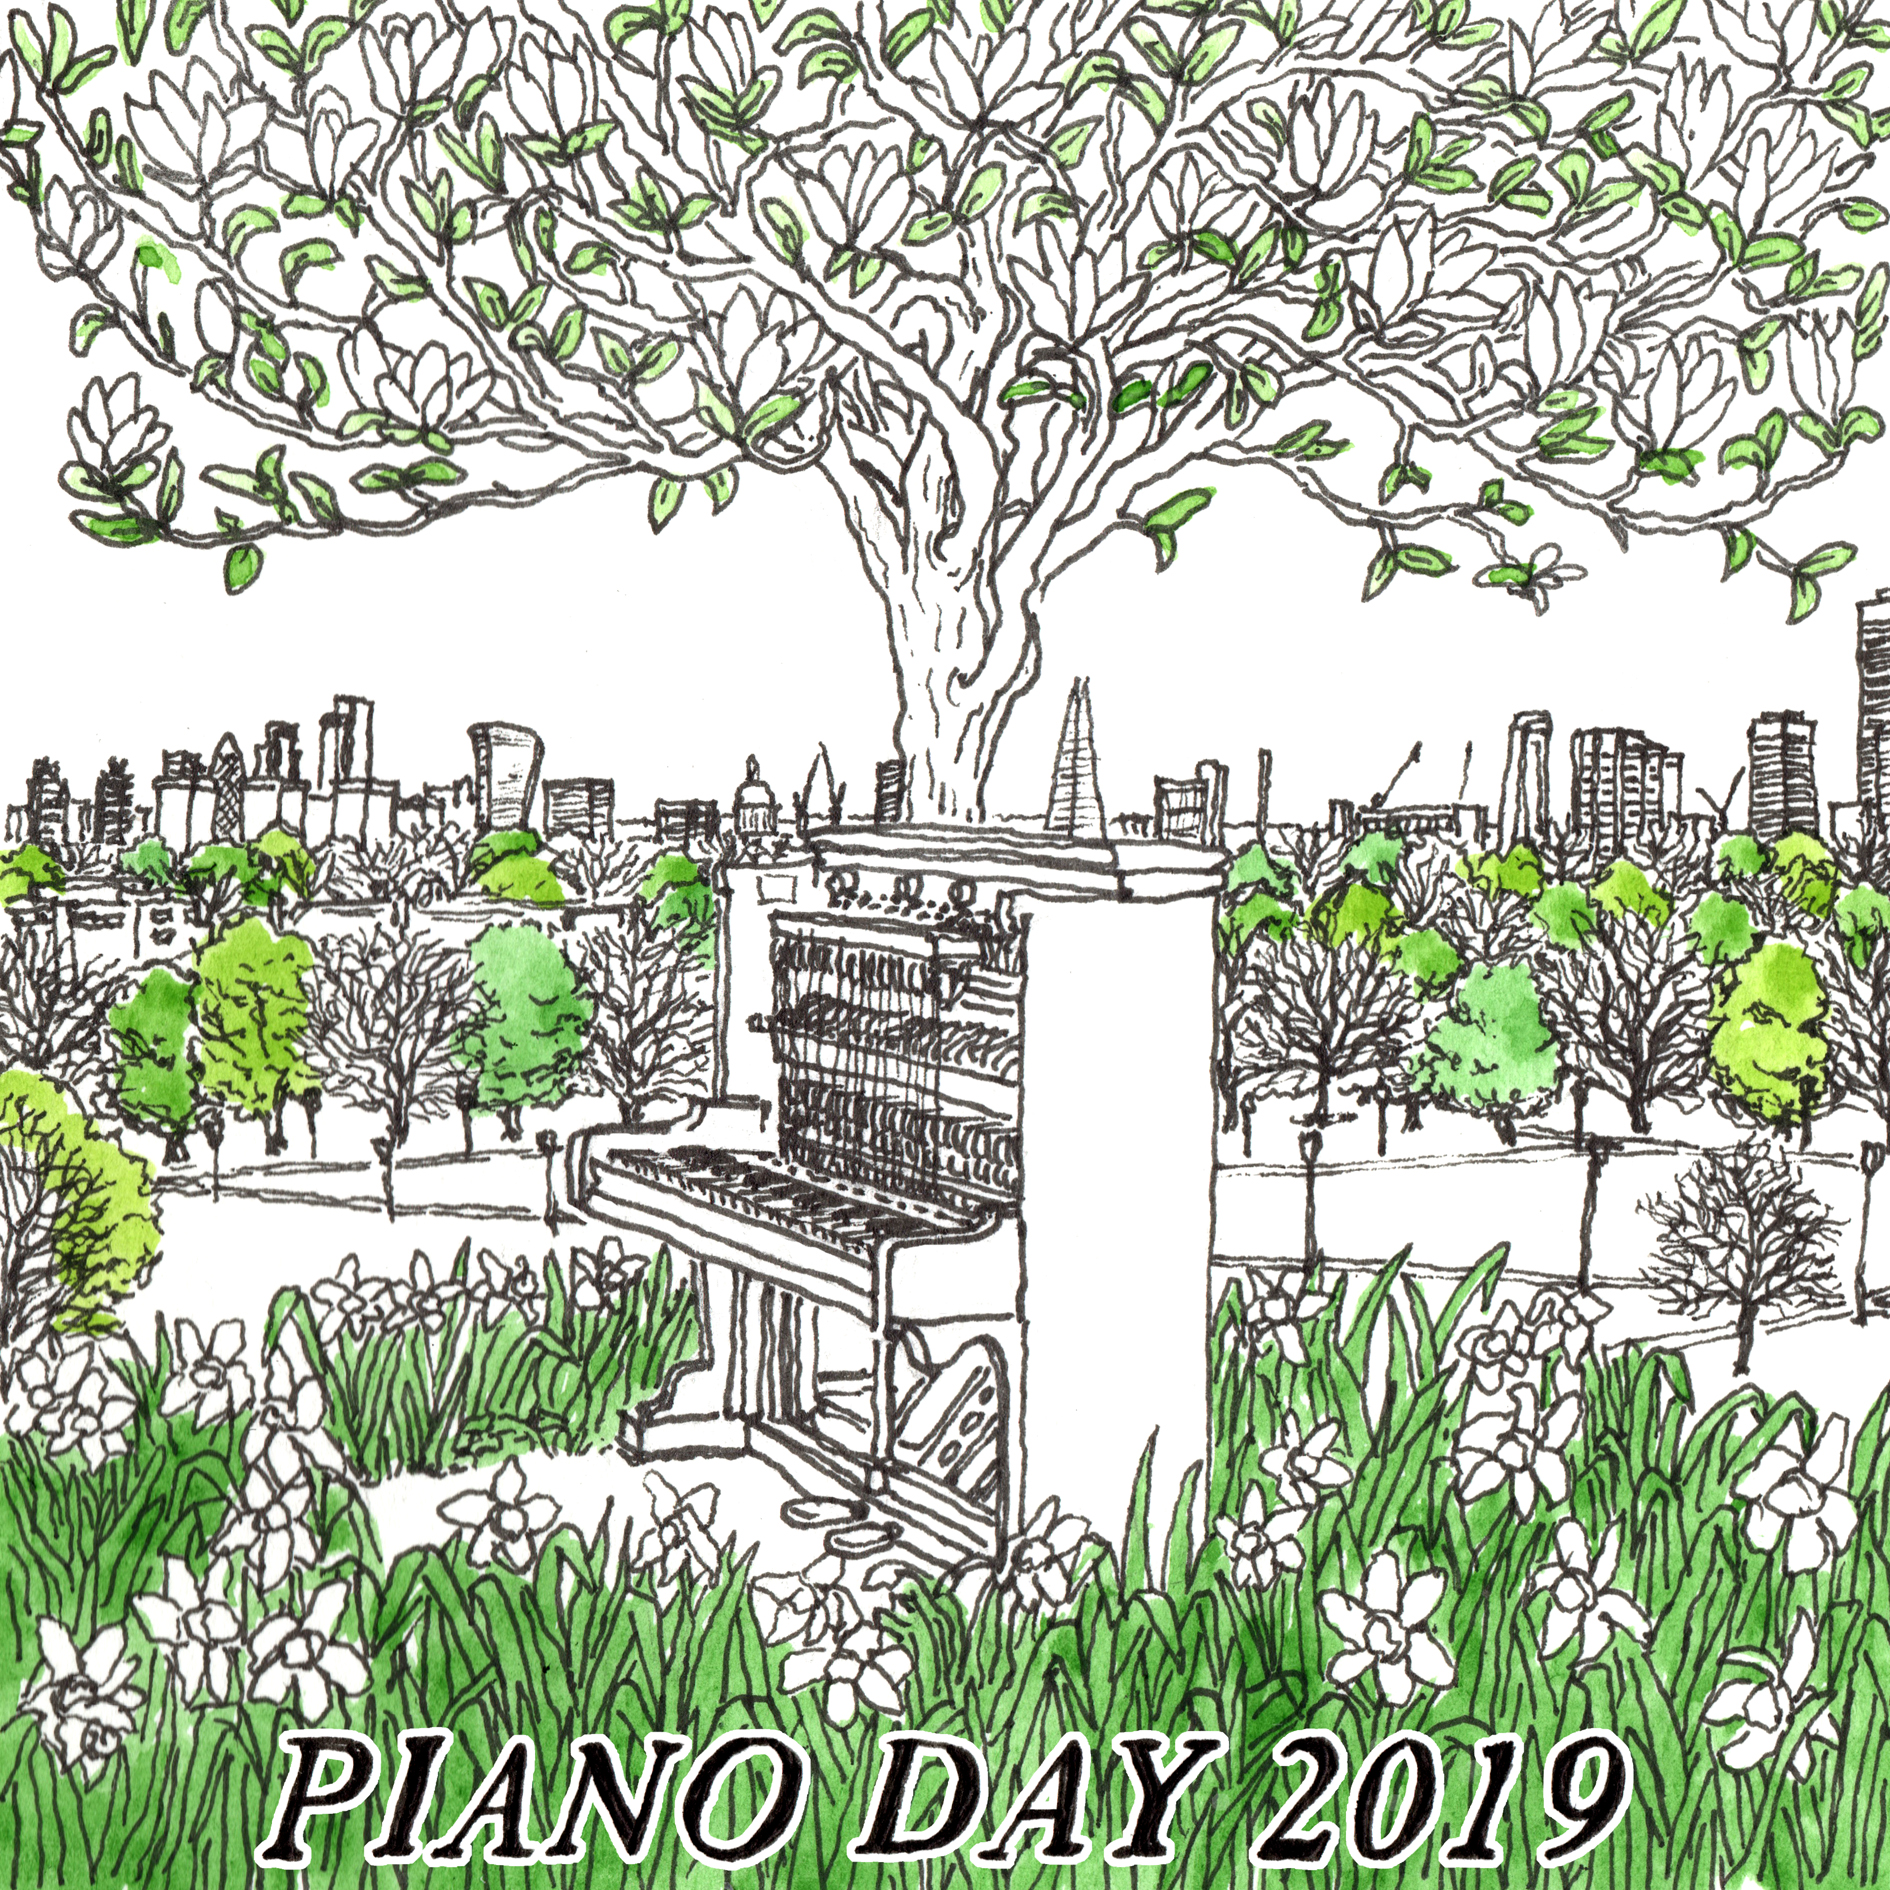 PianoDay2019.jpg